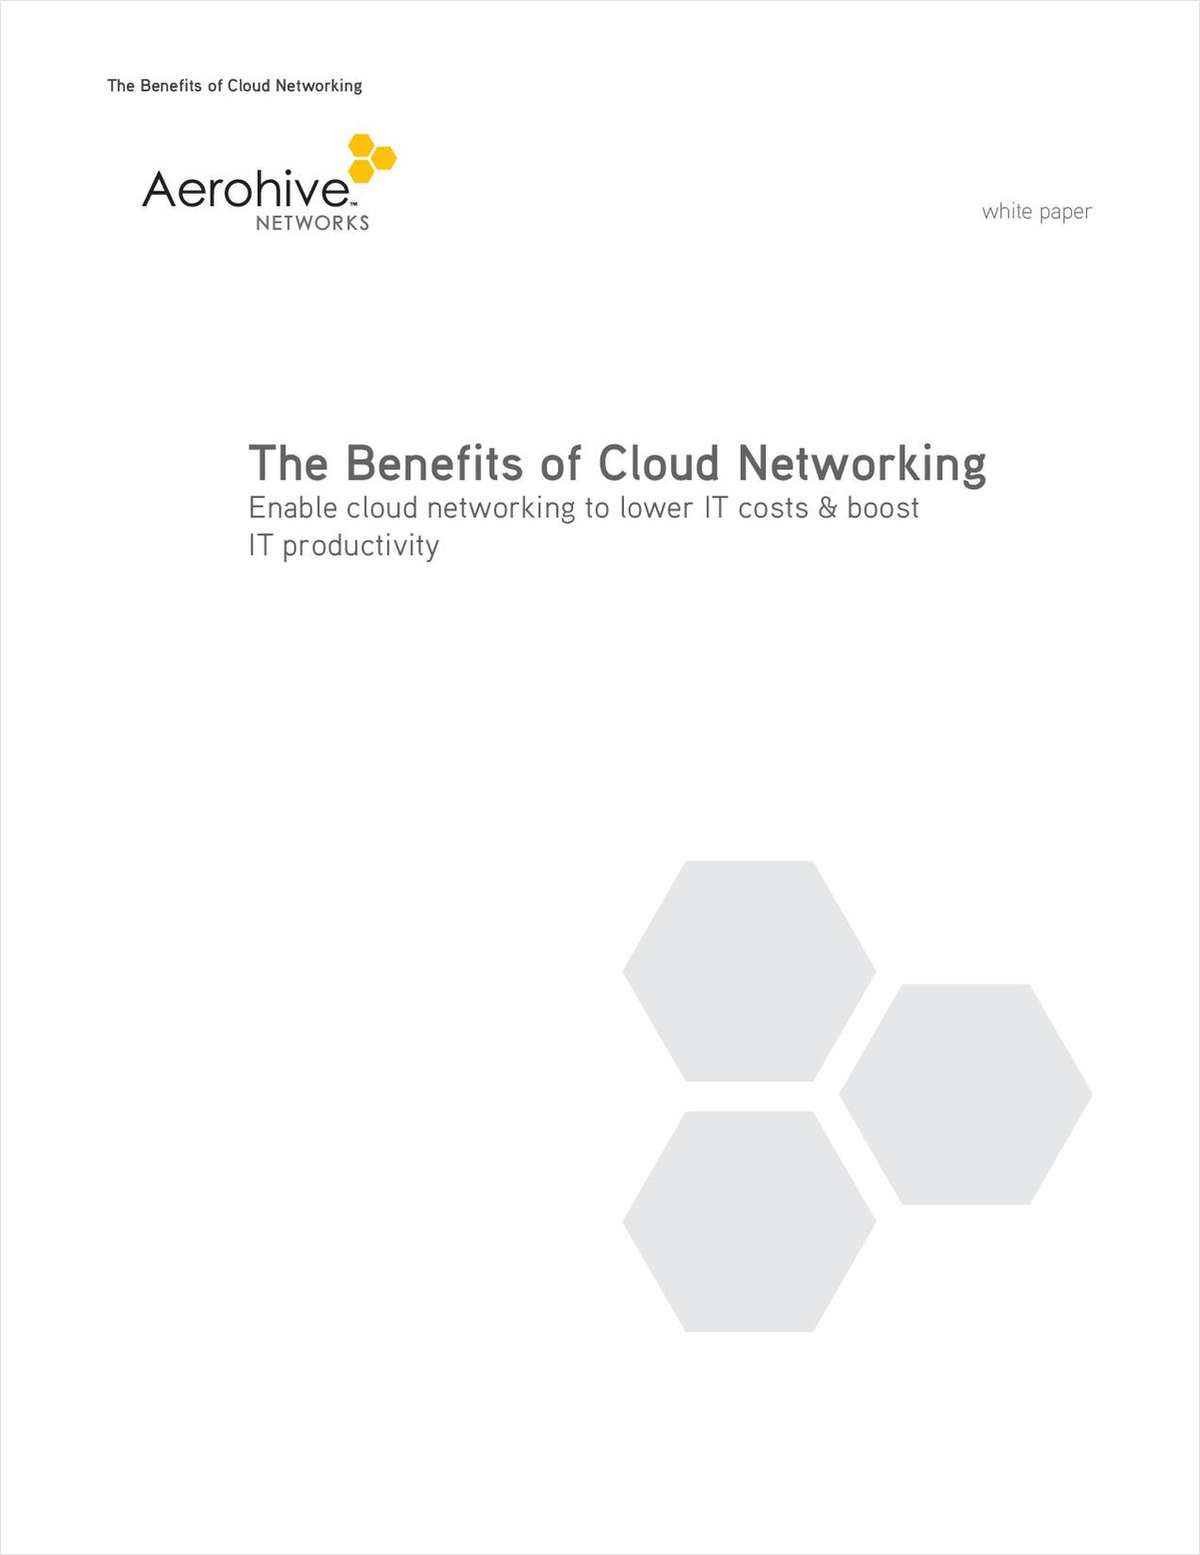 The Benefits of Cloud Networking